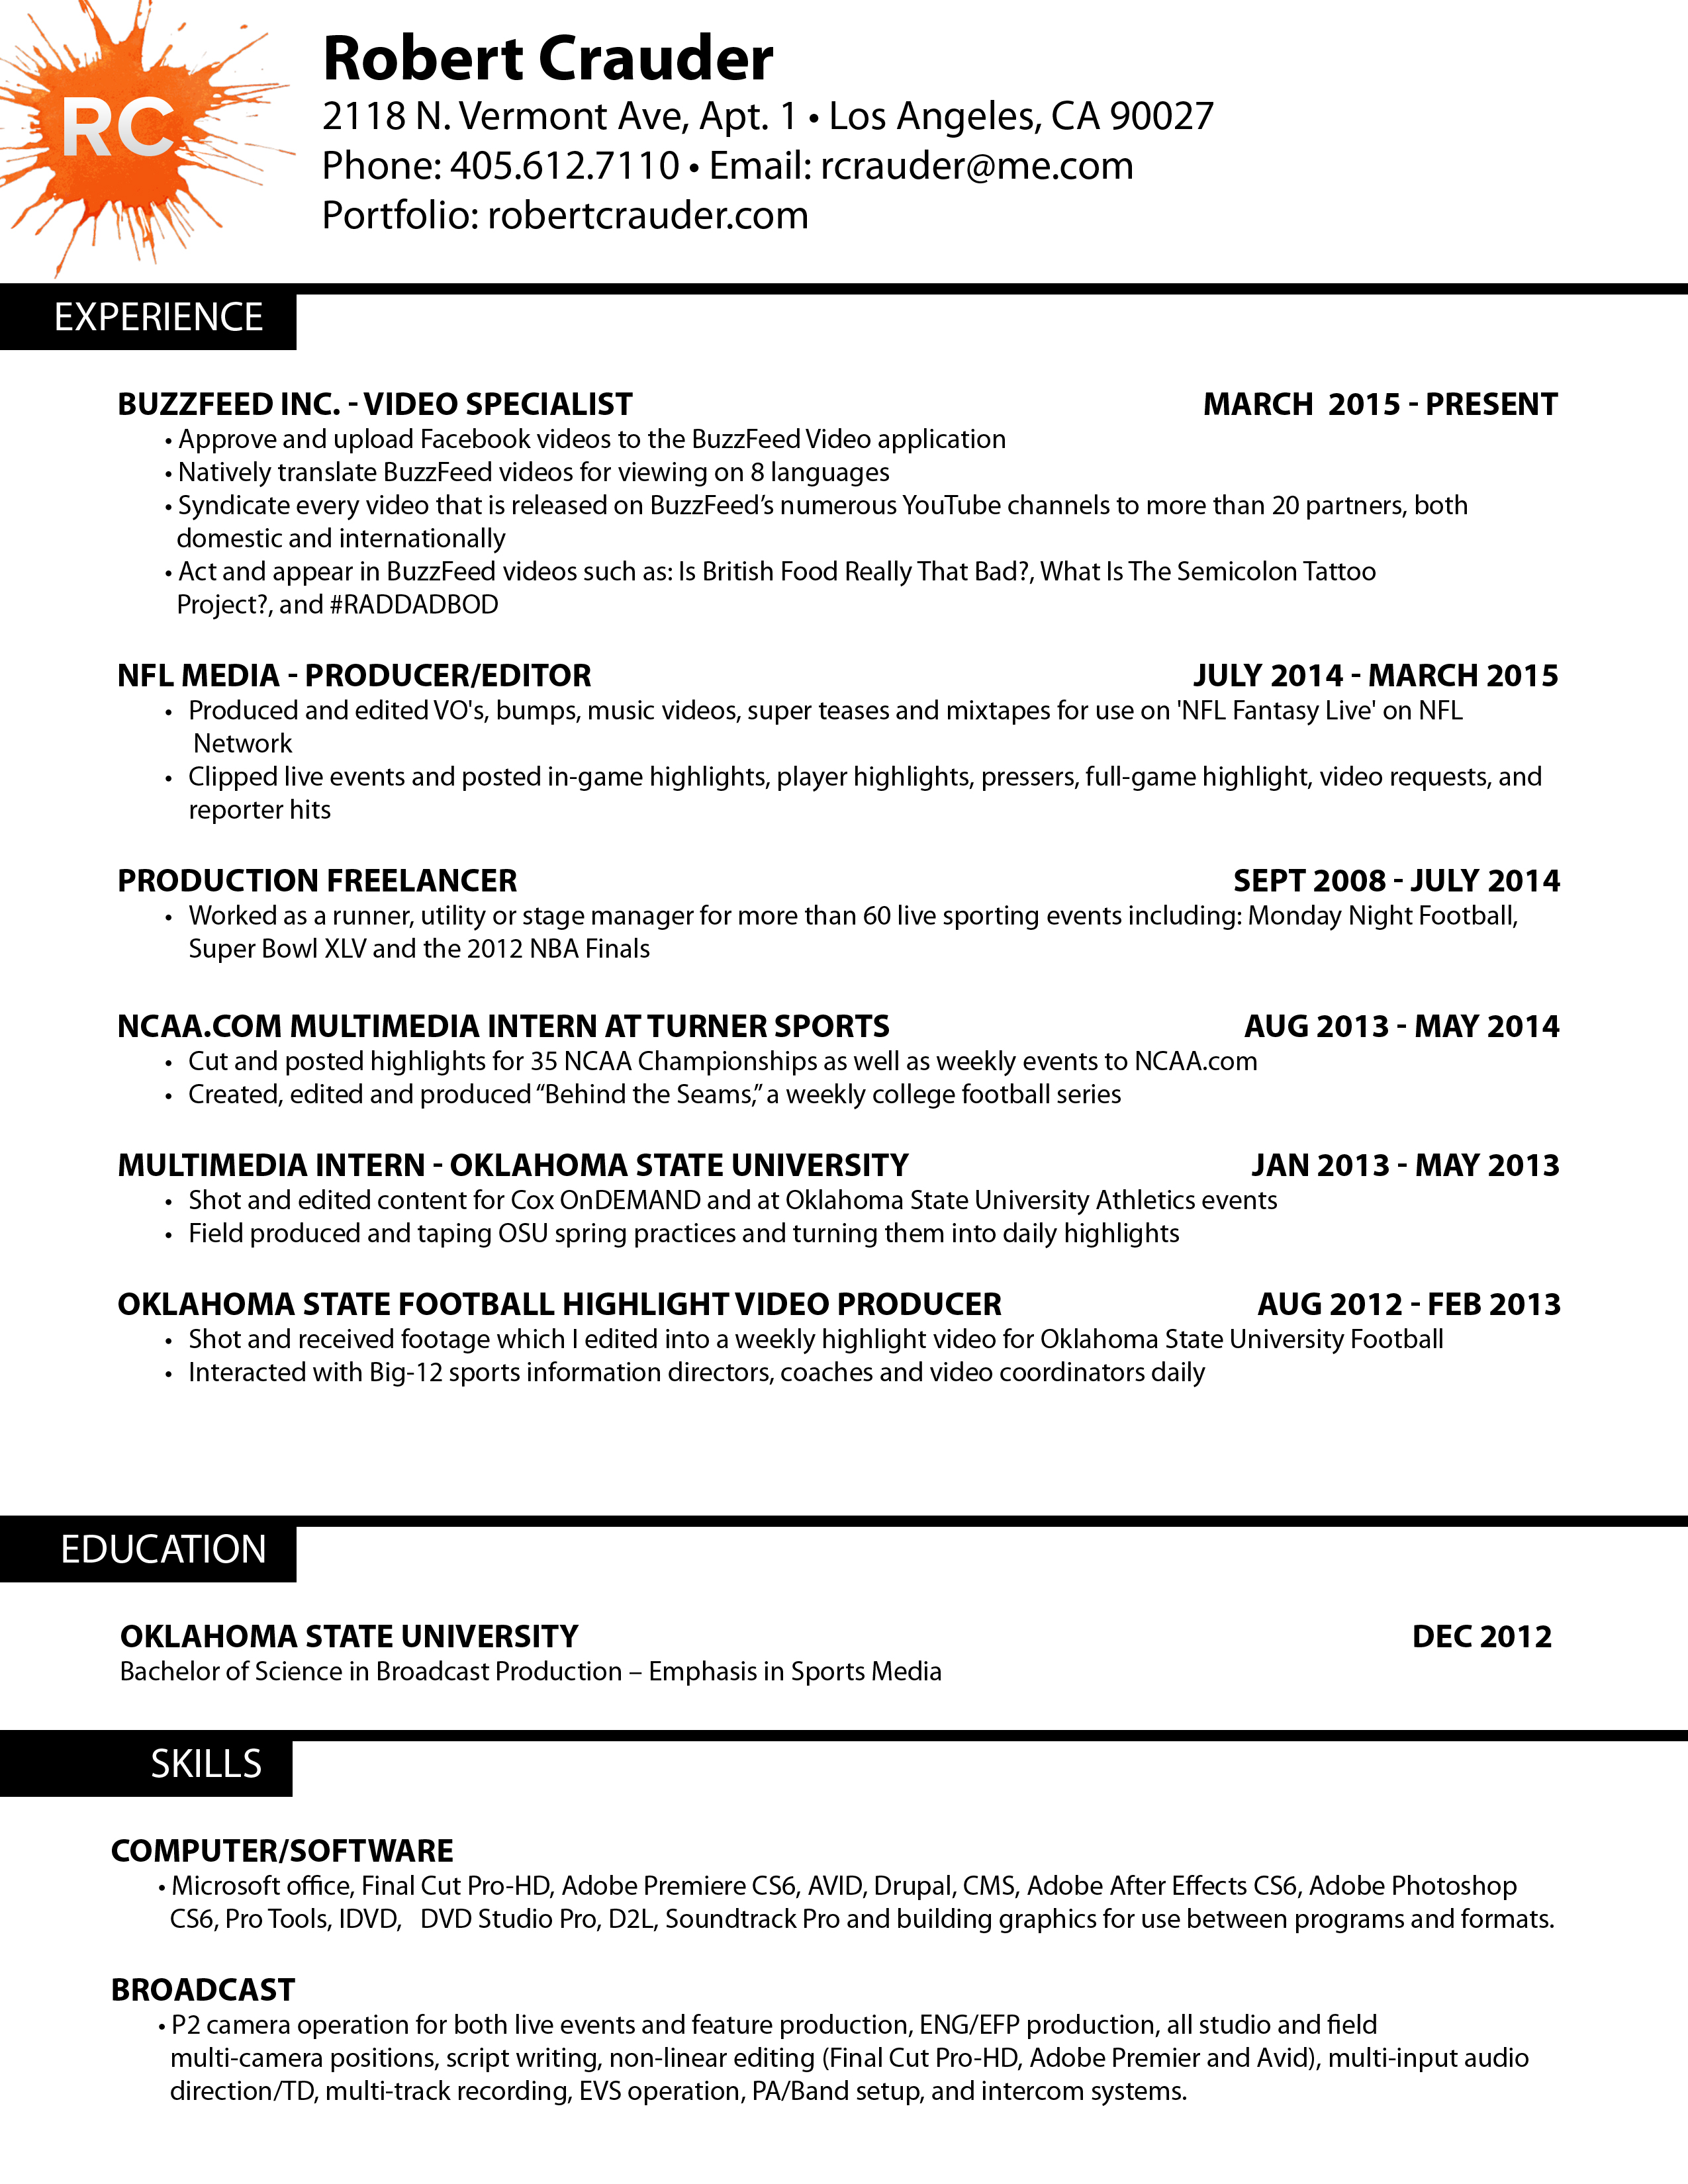 sle resume for it professional with experience basic